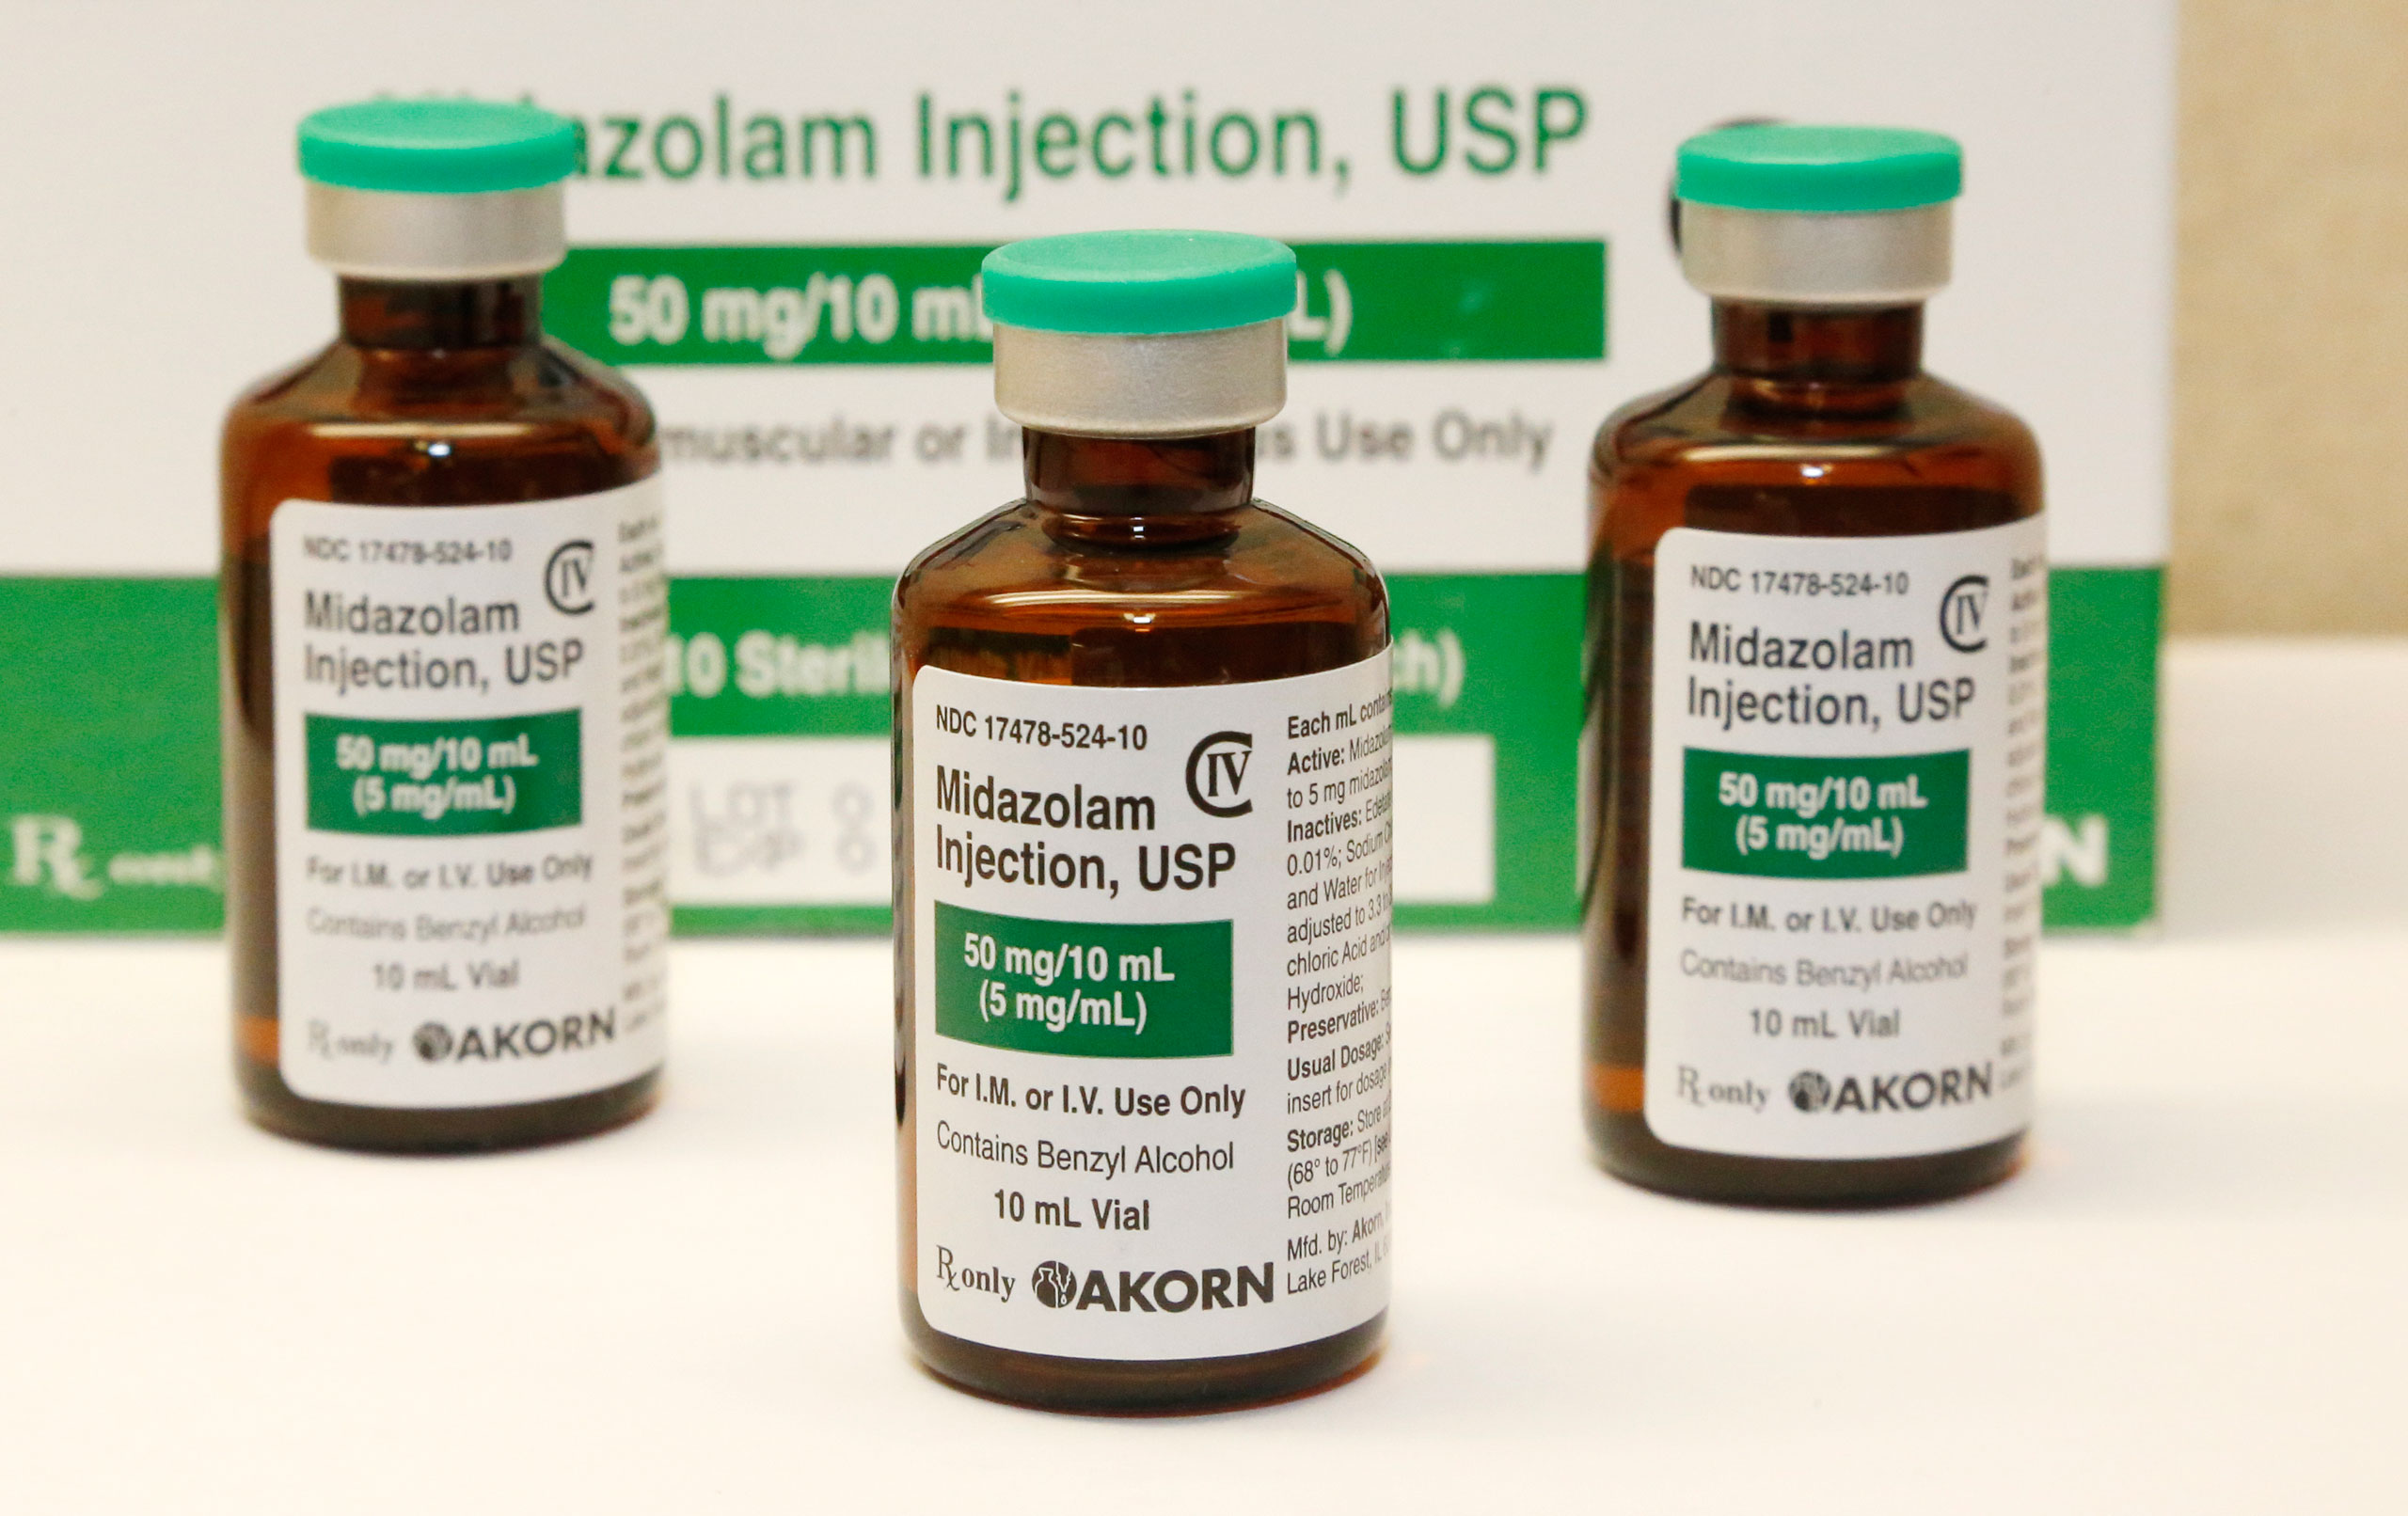 This July 25, 2014 file photo shows bottles of the sedative midazolam at a hospital pharmacy in Oklahoma City. The Arkansas Supreme Court ruled Thursday, June 23, 2016, that the state can execute eight death row inmates using its three-drug protocol, upholding a state law that keeps information about lethal injection drugs confidential.